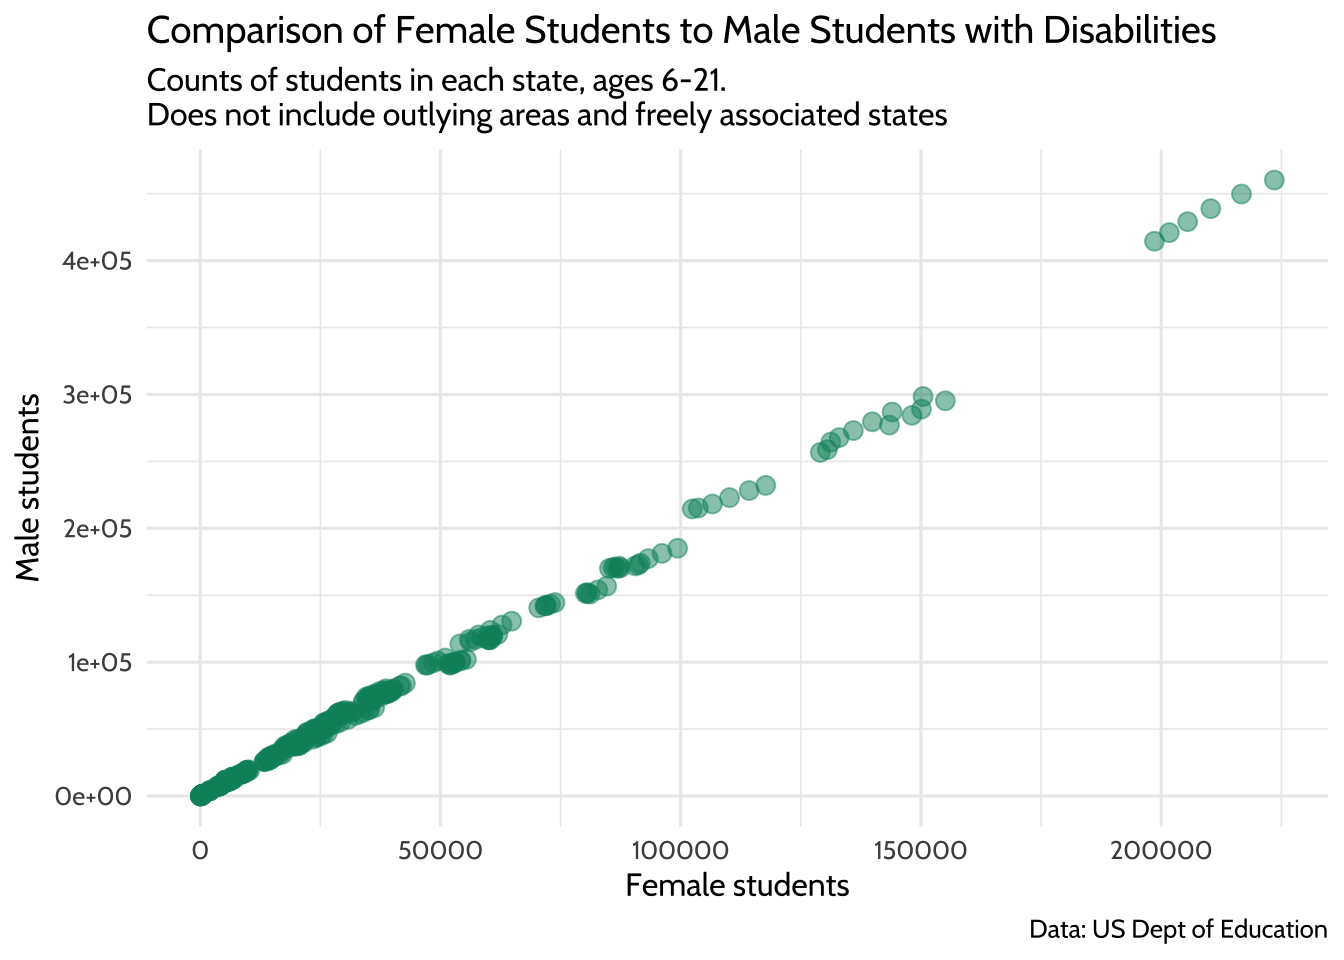 Comparison of Female Students to Male Students with Disabilities